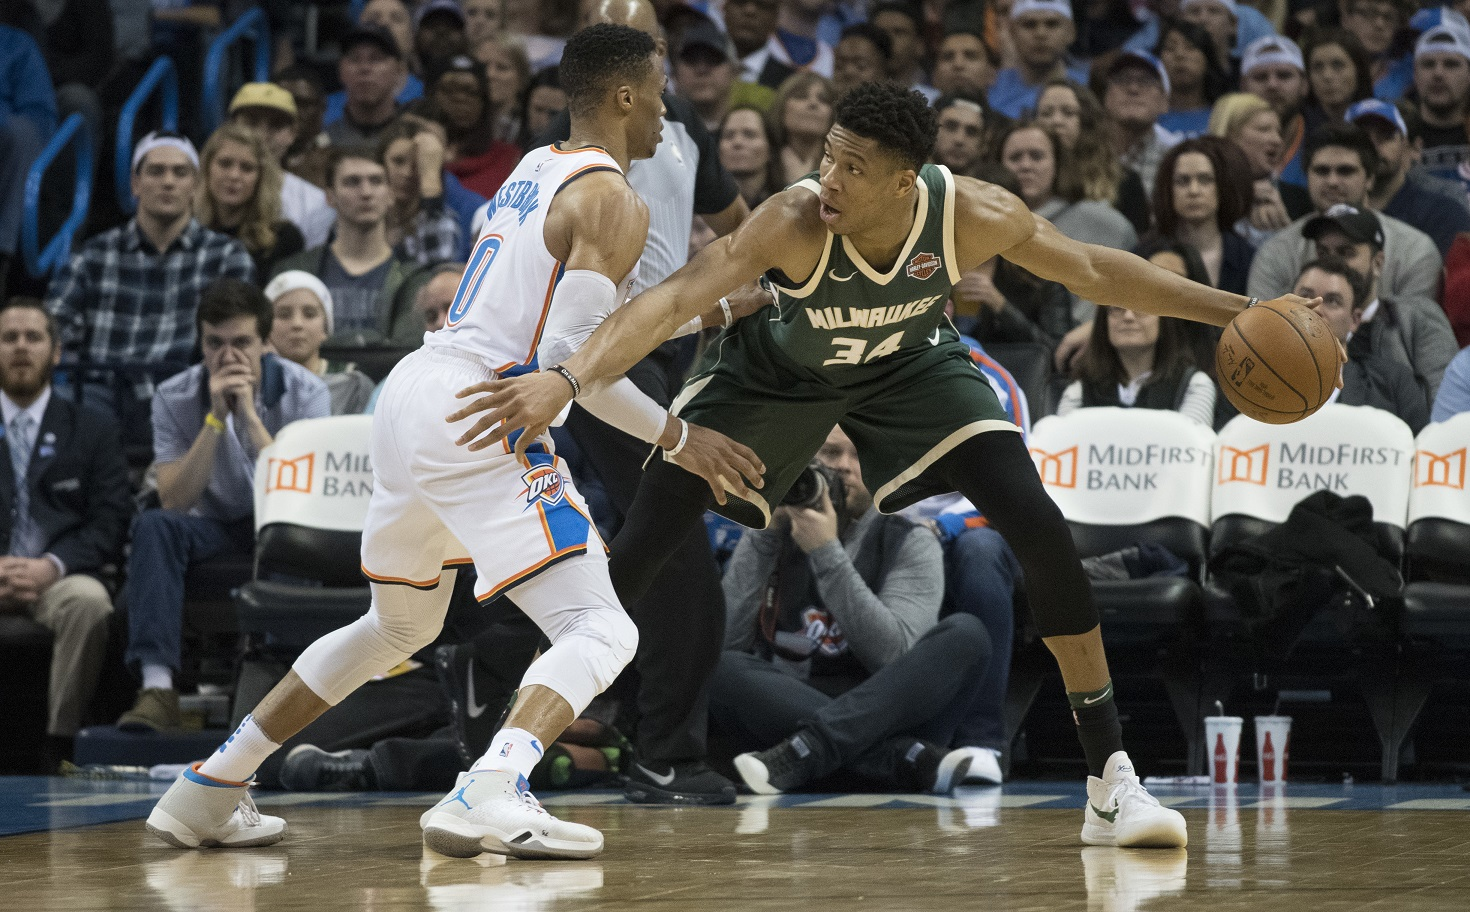 WATCH: Giannis dunks on Westbrook for the win. No he didn't step out of bounds